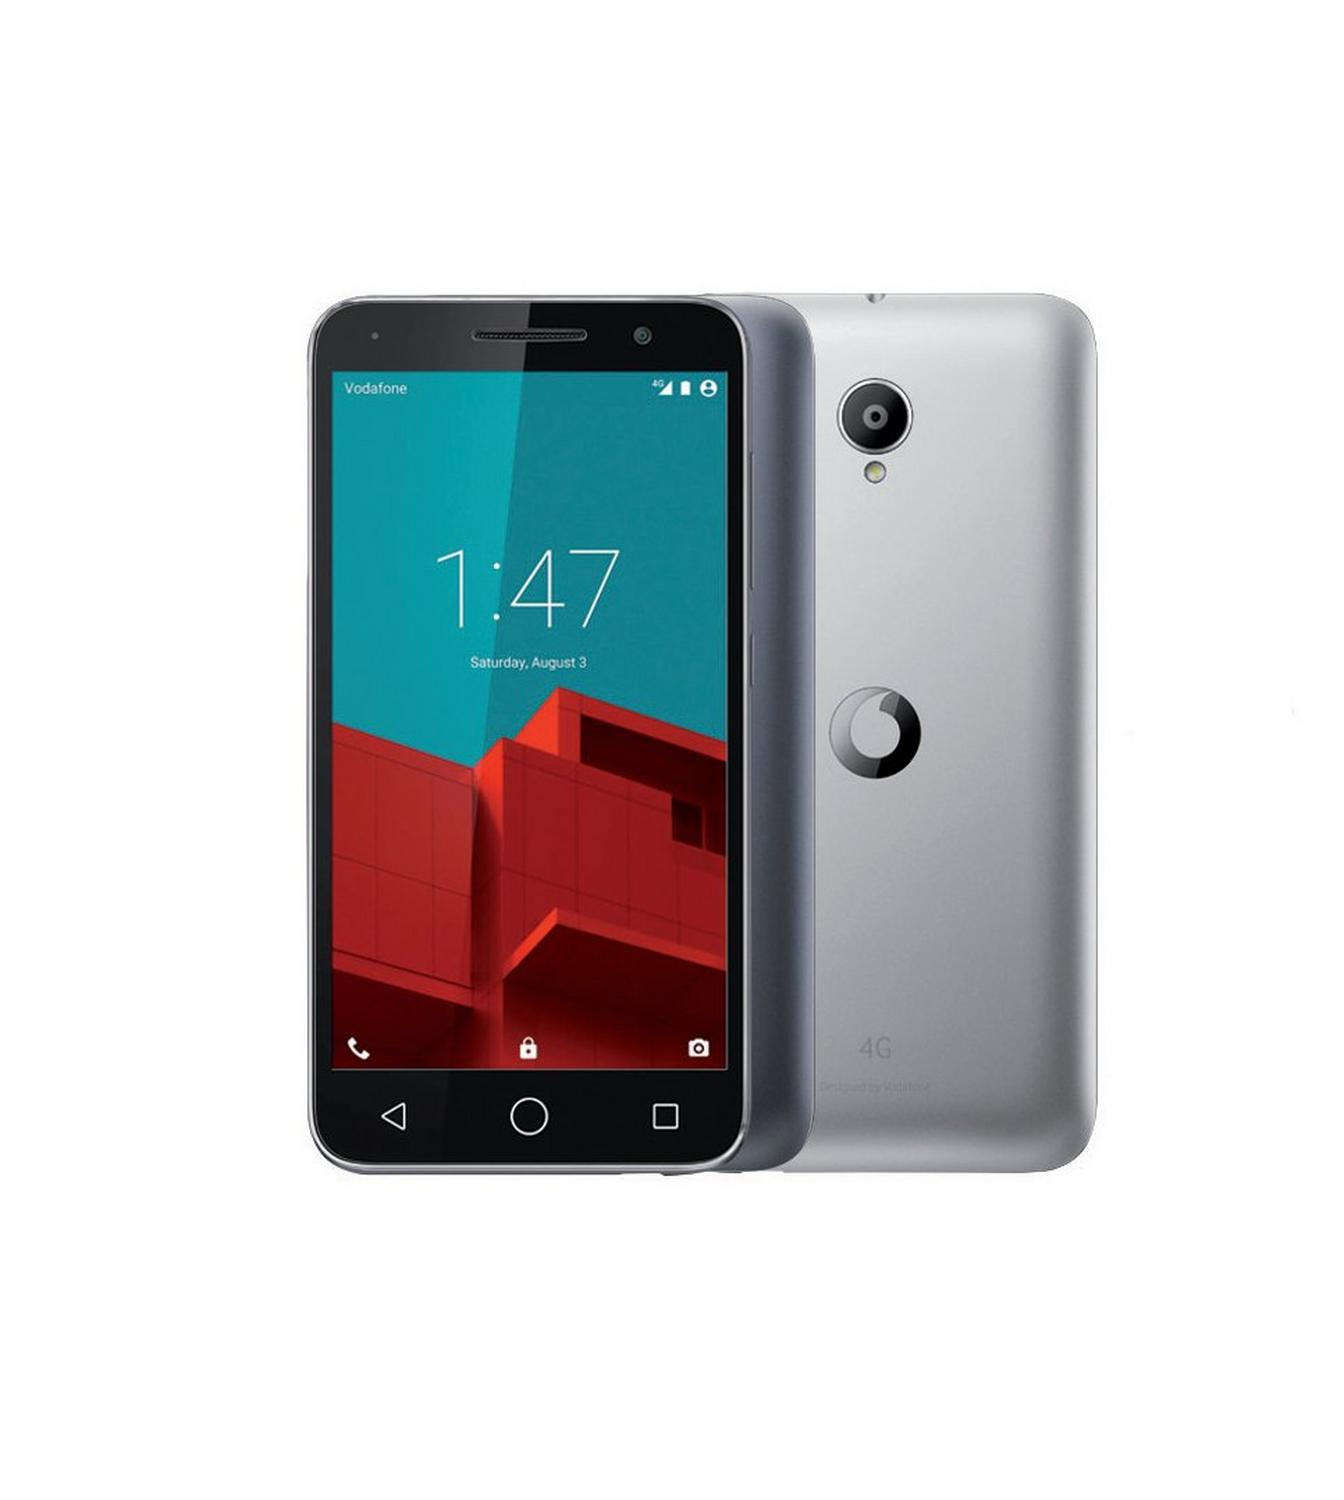 Camera Android Phones Pay As You Go pay as you go vodafone smart prime 6 studio image for from studio